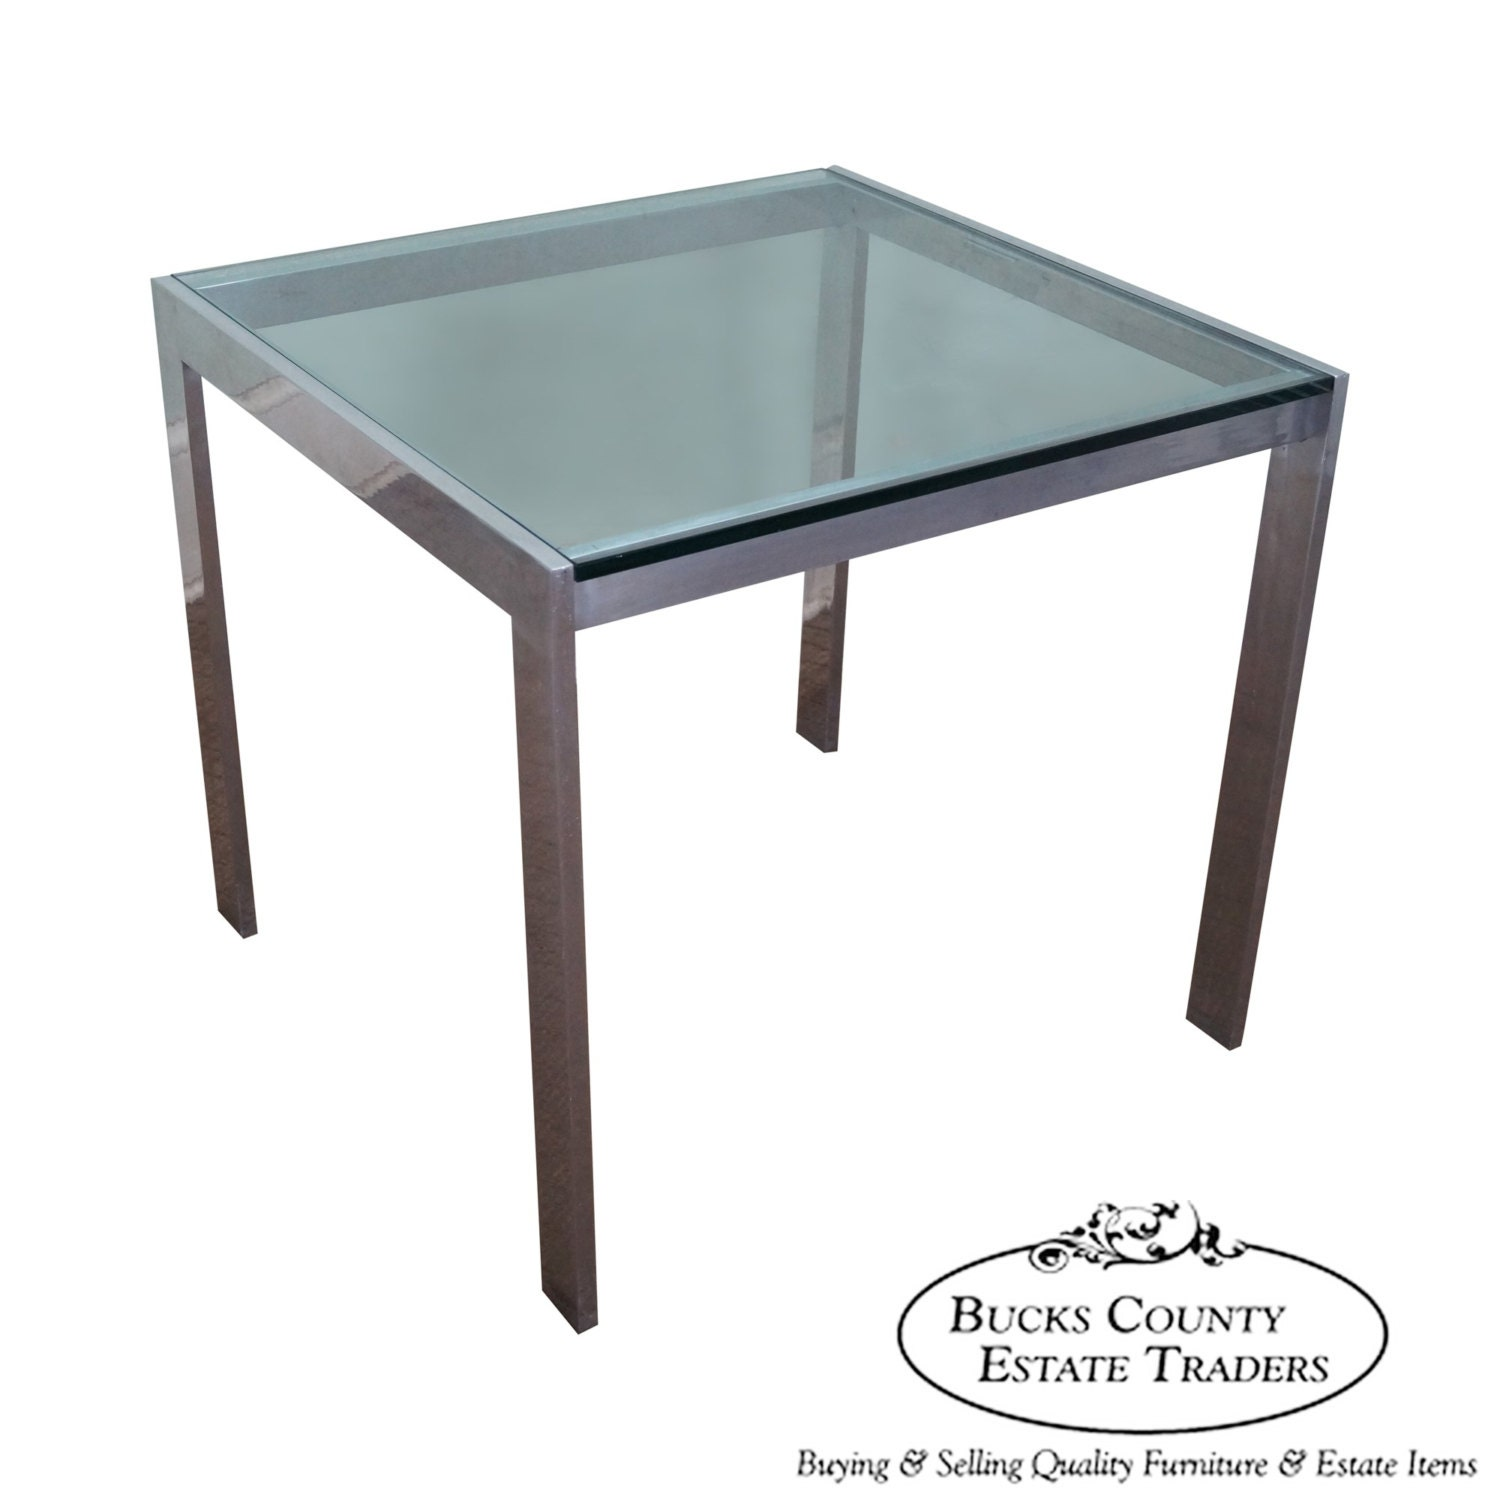 mid century modern aluminum square glass top dining table. Black Bedroom Furniture Sets. Home Design Ideas